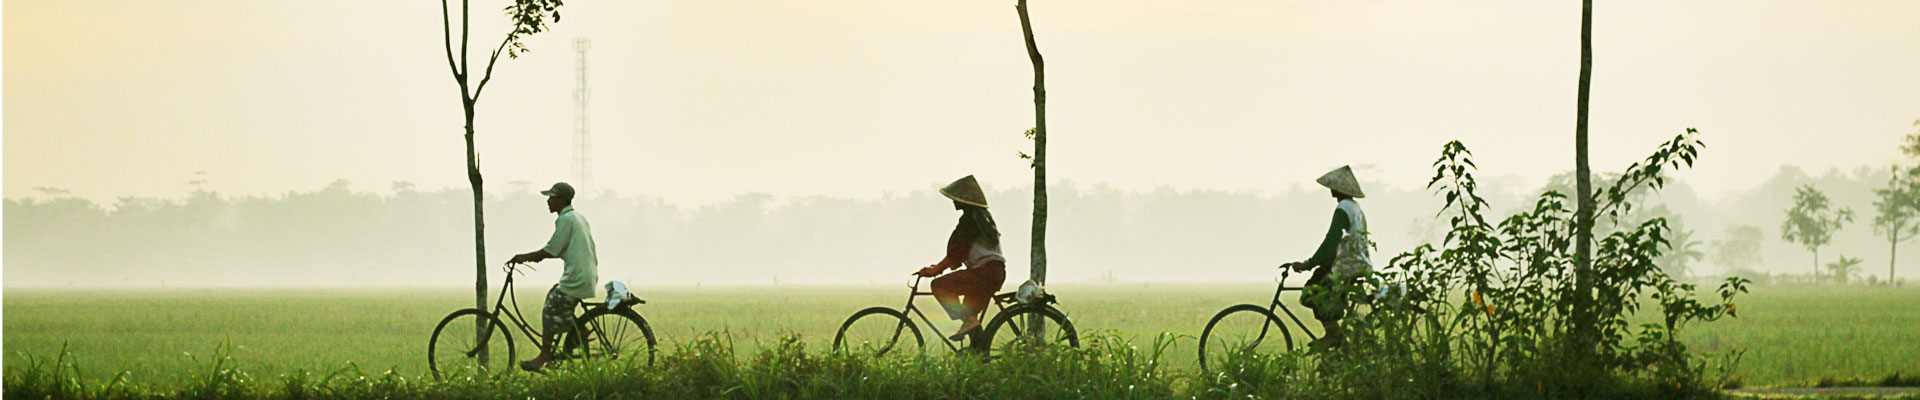 WOman riding a bike in Indonesia